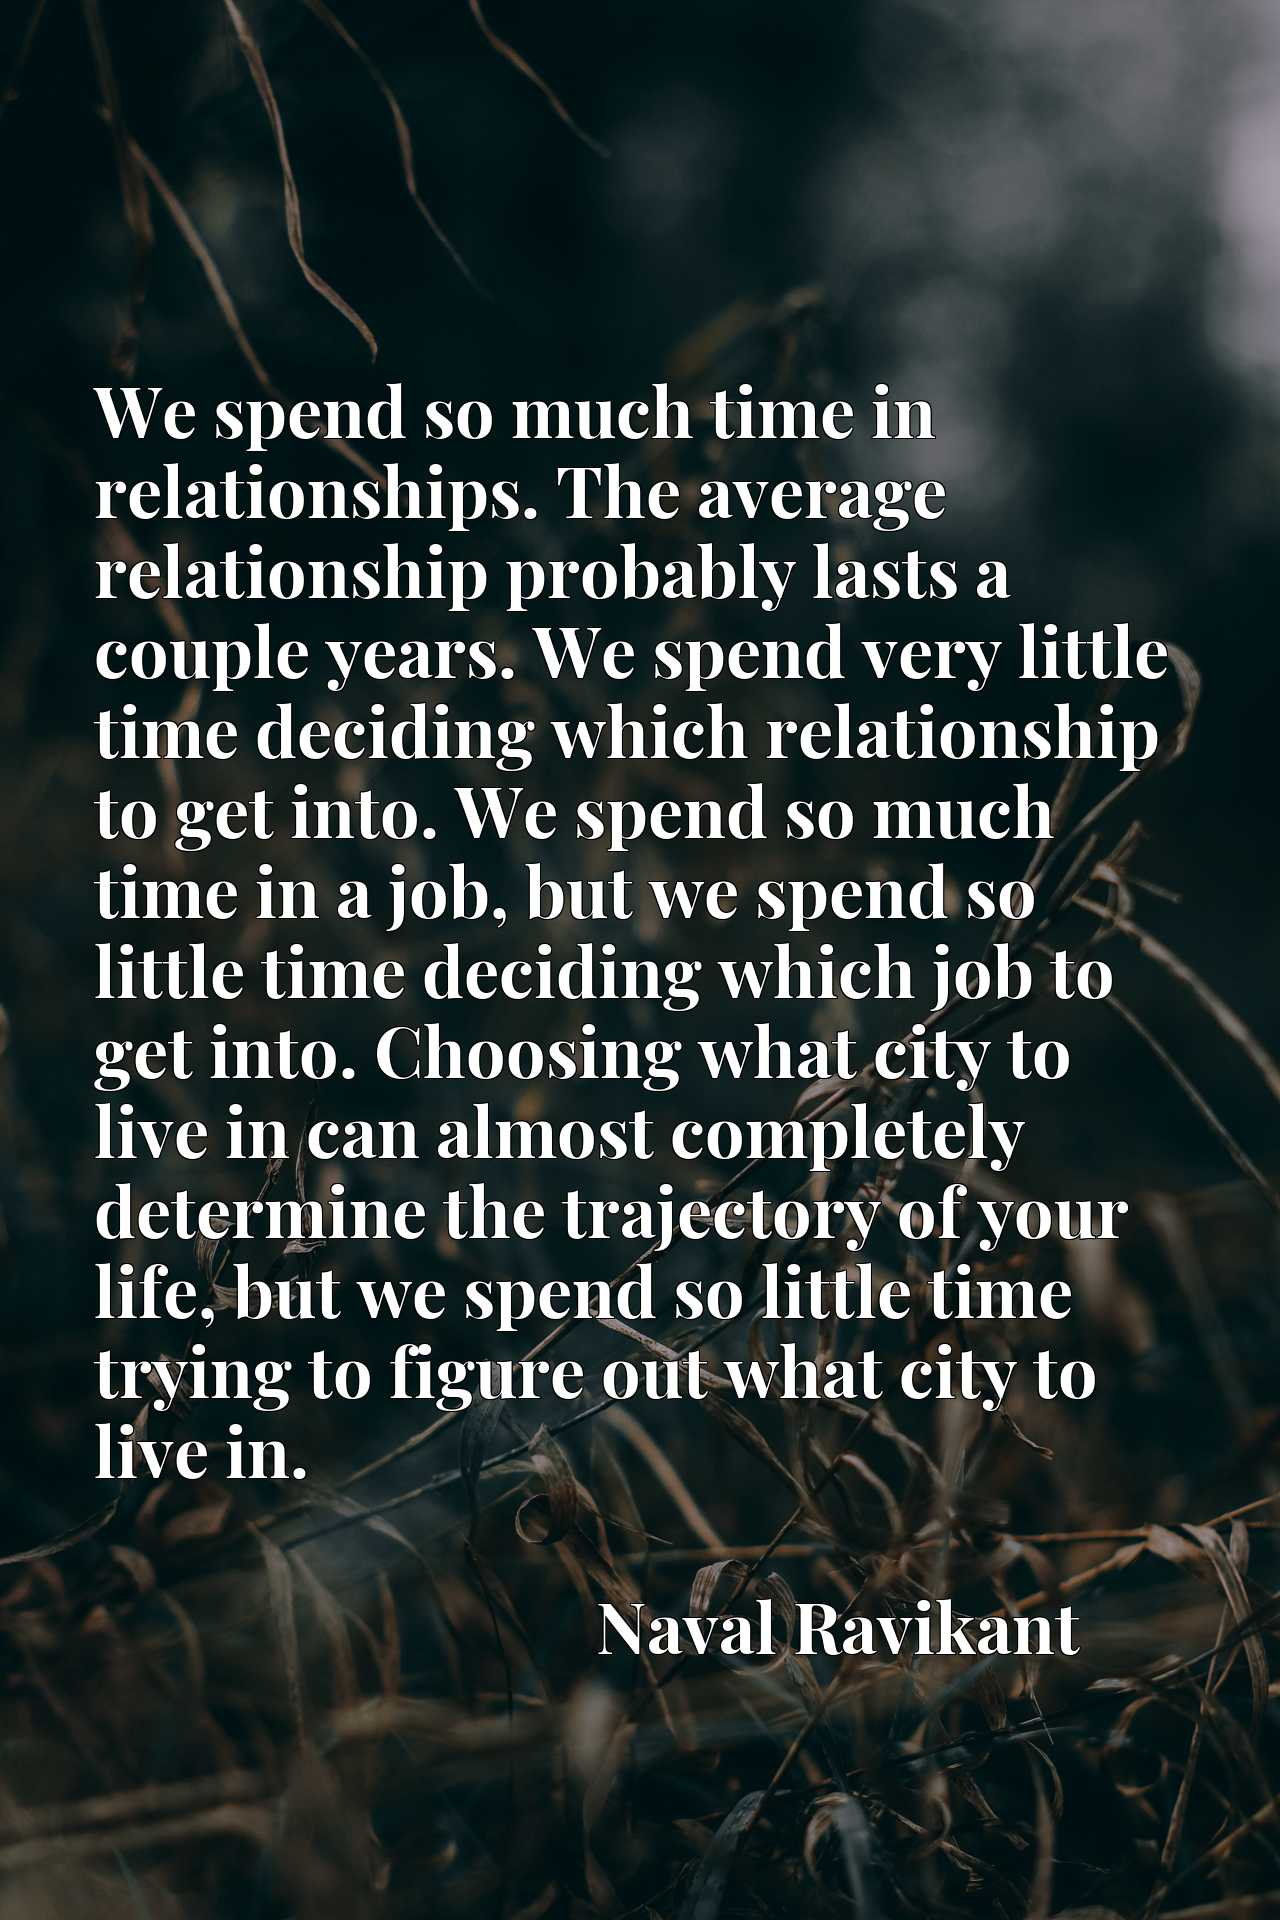 We spend so much time in relationships. The average relationship probably lasts a couple years. We spend very little time deciding which relationship to get into. We spend so much time in a job, but we spend so little time deciding which job to get into. Choosing what city to live in can almost completely determine the trajectory of your life, but we spend so little time trying to figure out what city to live in.